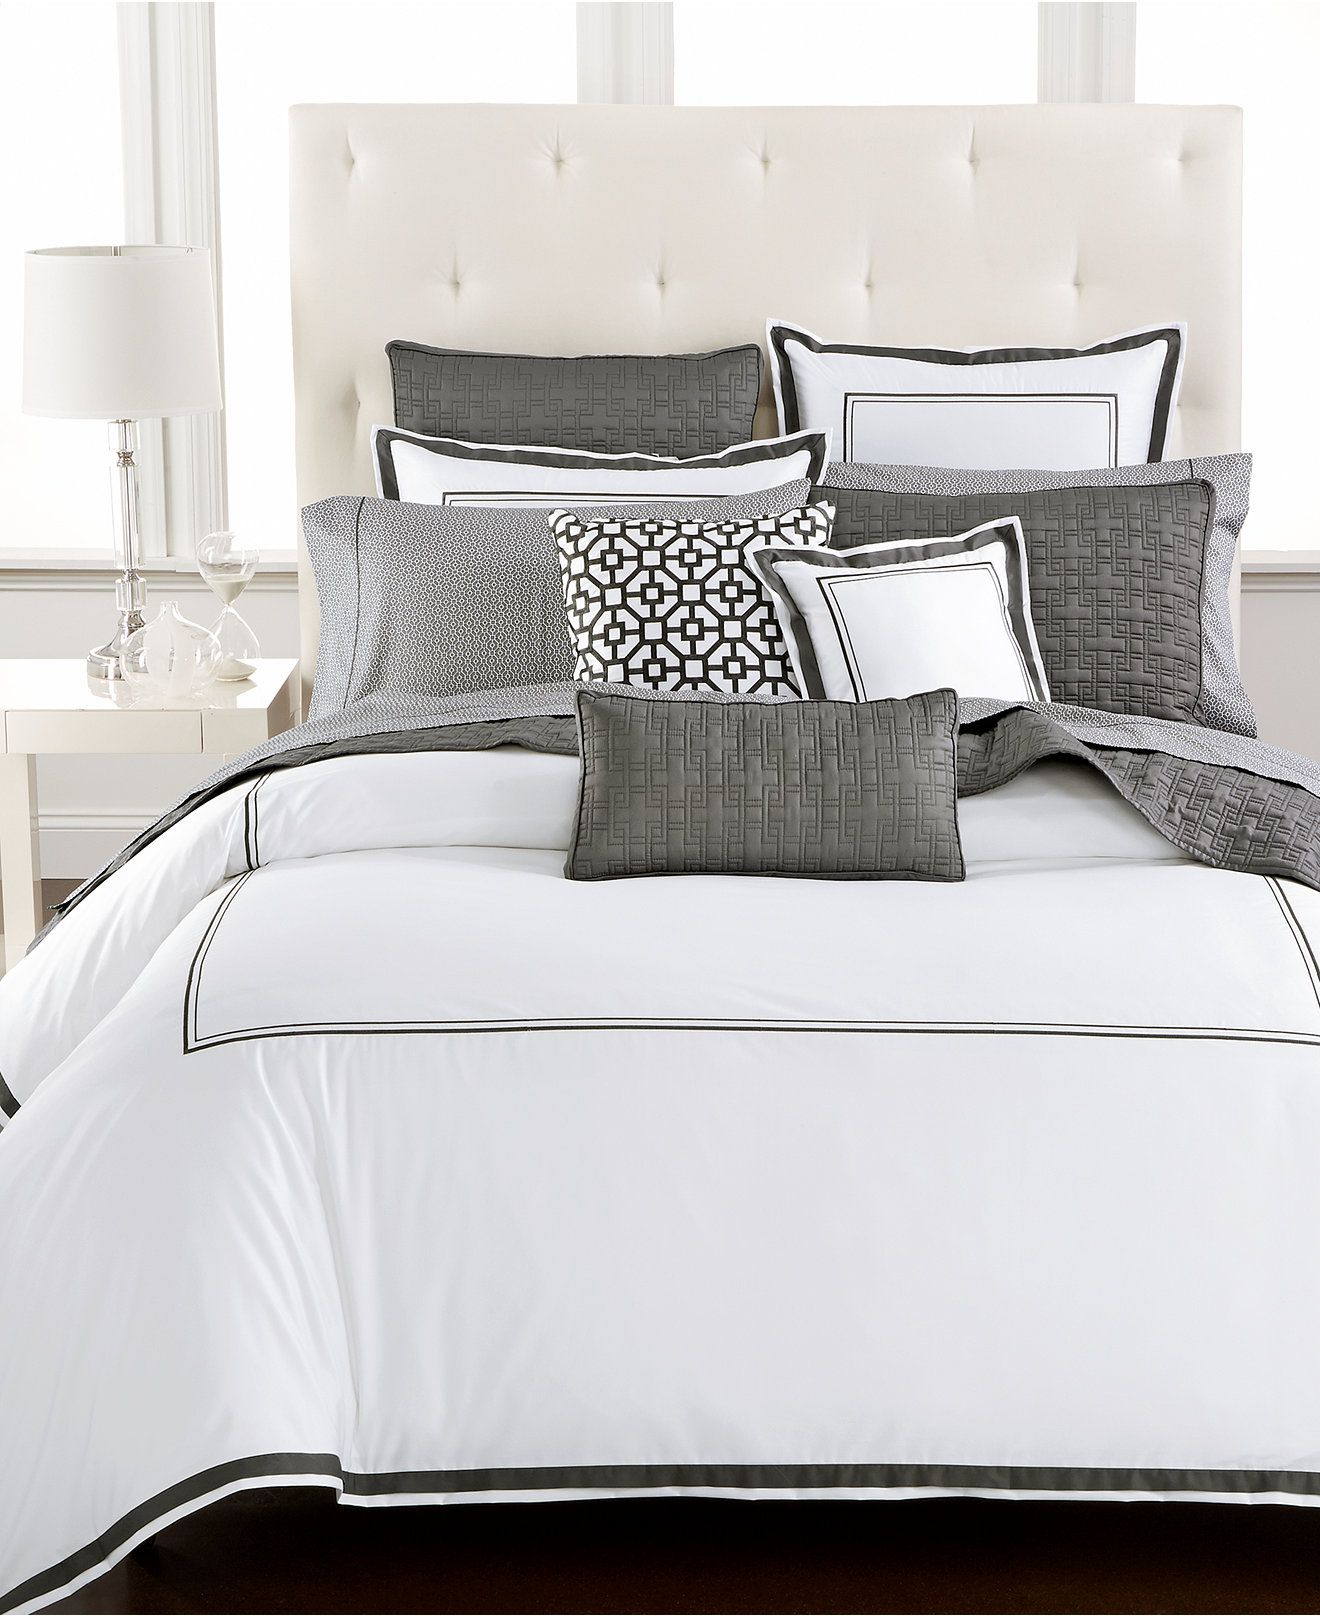 Embroidered Frame Bedding Collection Created For Macy S Hotel